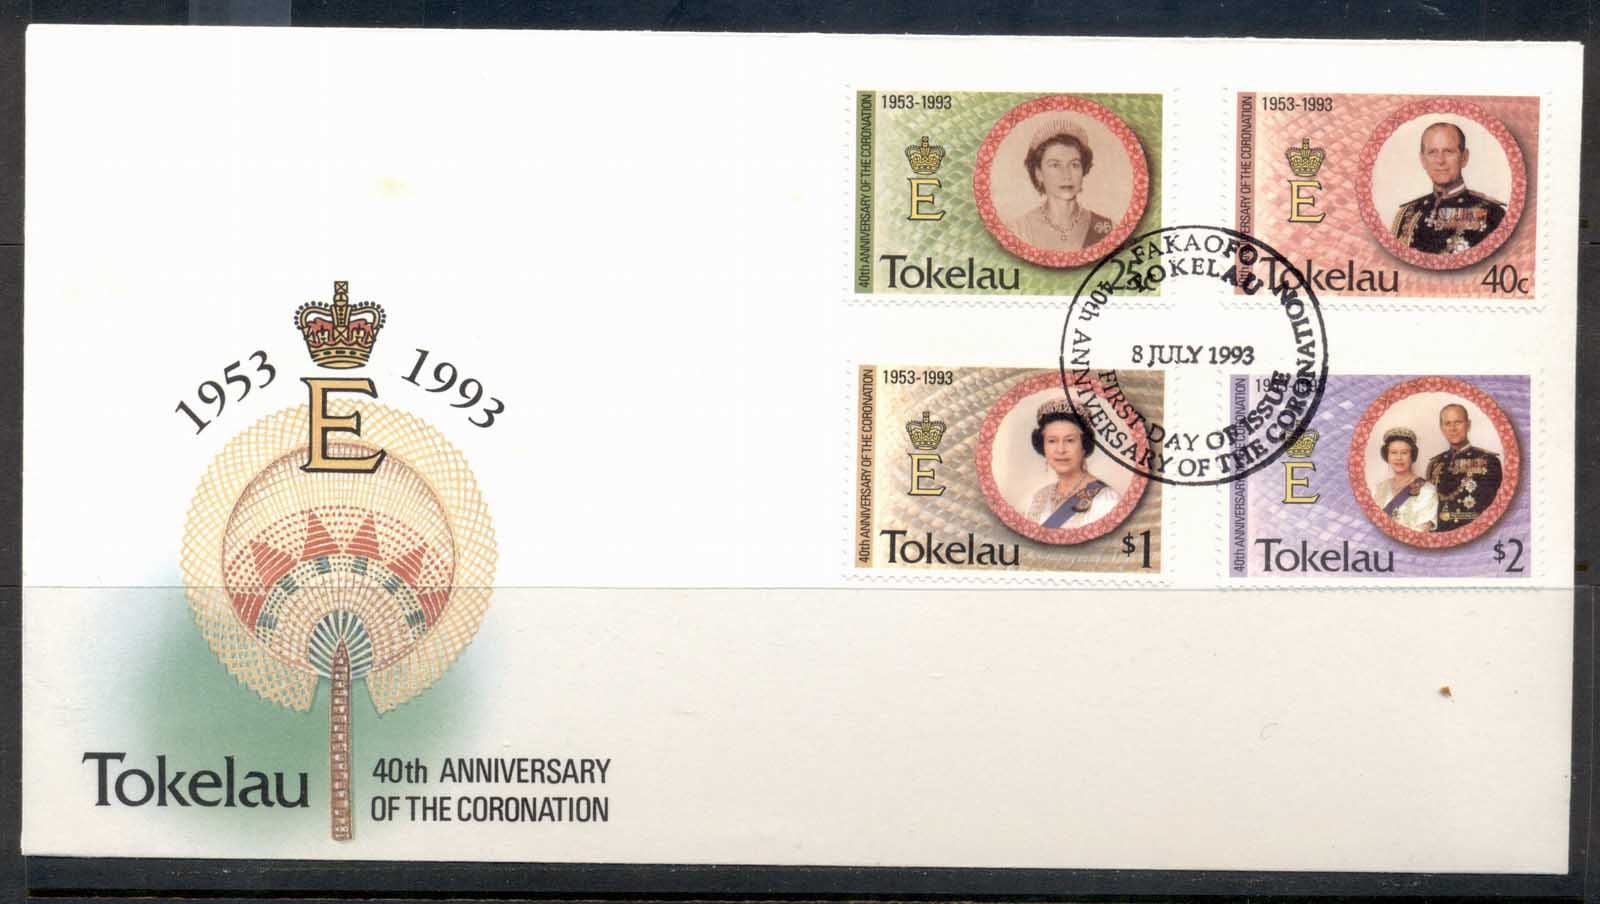 Tokelau 1993 QEII Coronation 40th Anniv. FDC